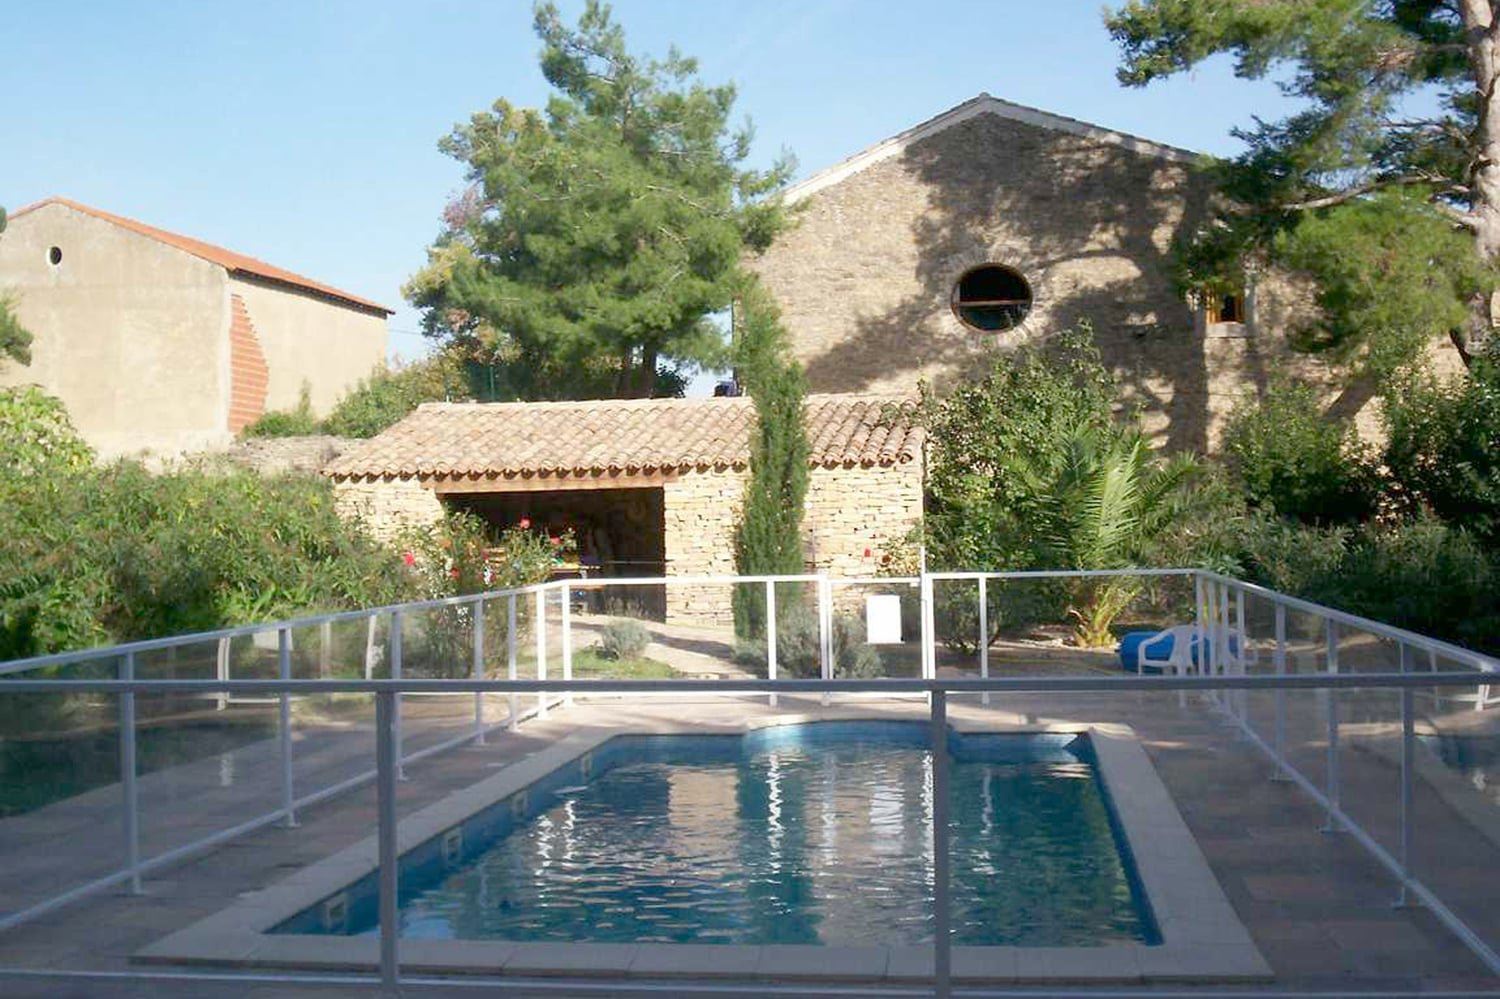 Maison de maître and stone house with 3 apartments, outbuilding, swimming pool and garden of 2600m²